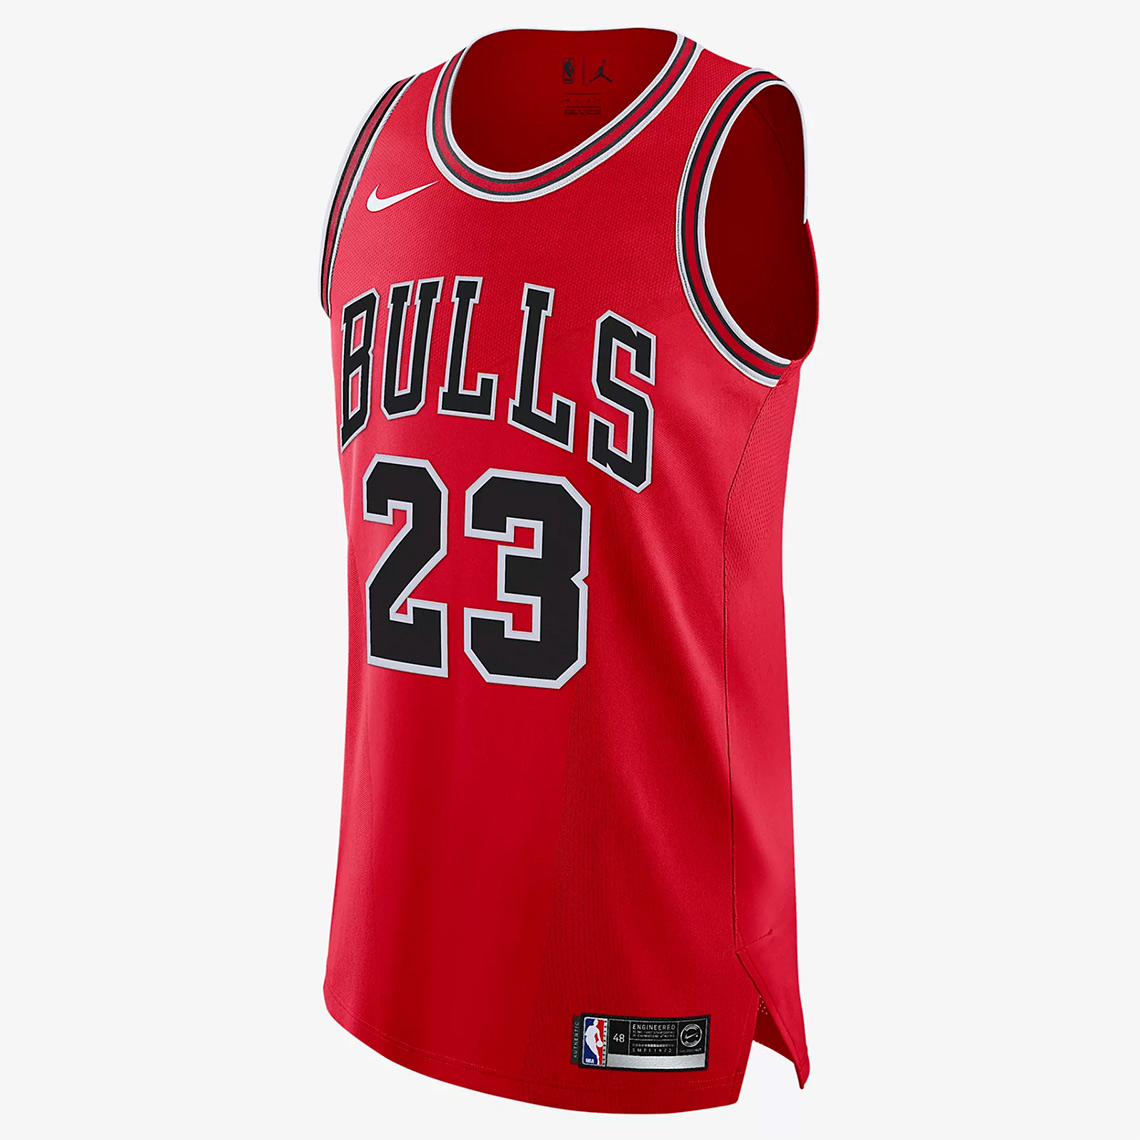 best sneakers 344ff e16bf NikeConnect Michael Jordan Authentic Bulls Jersey Release ...